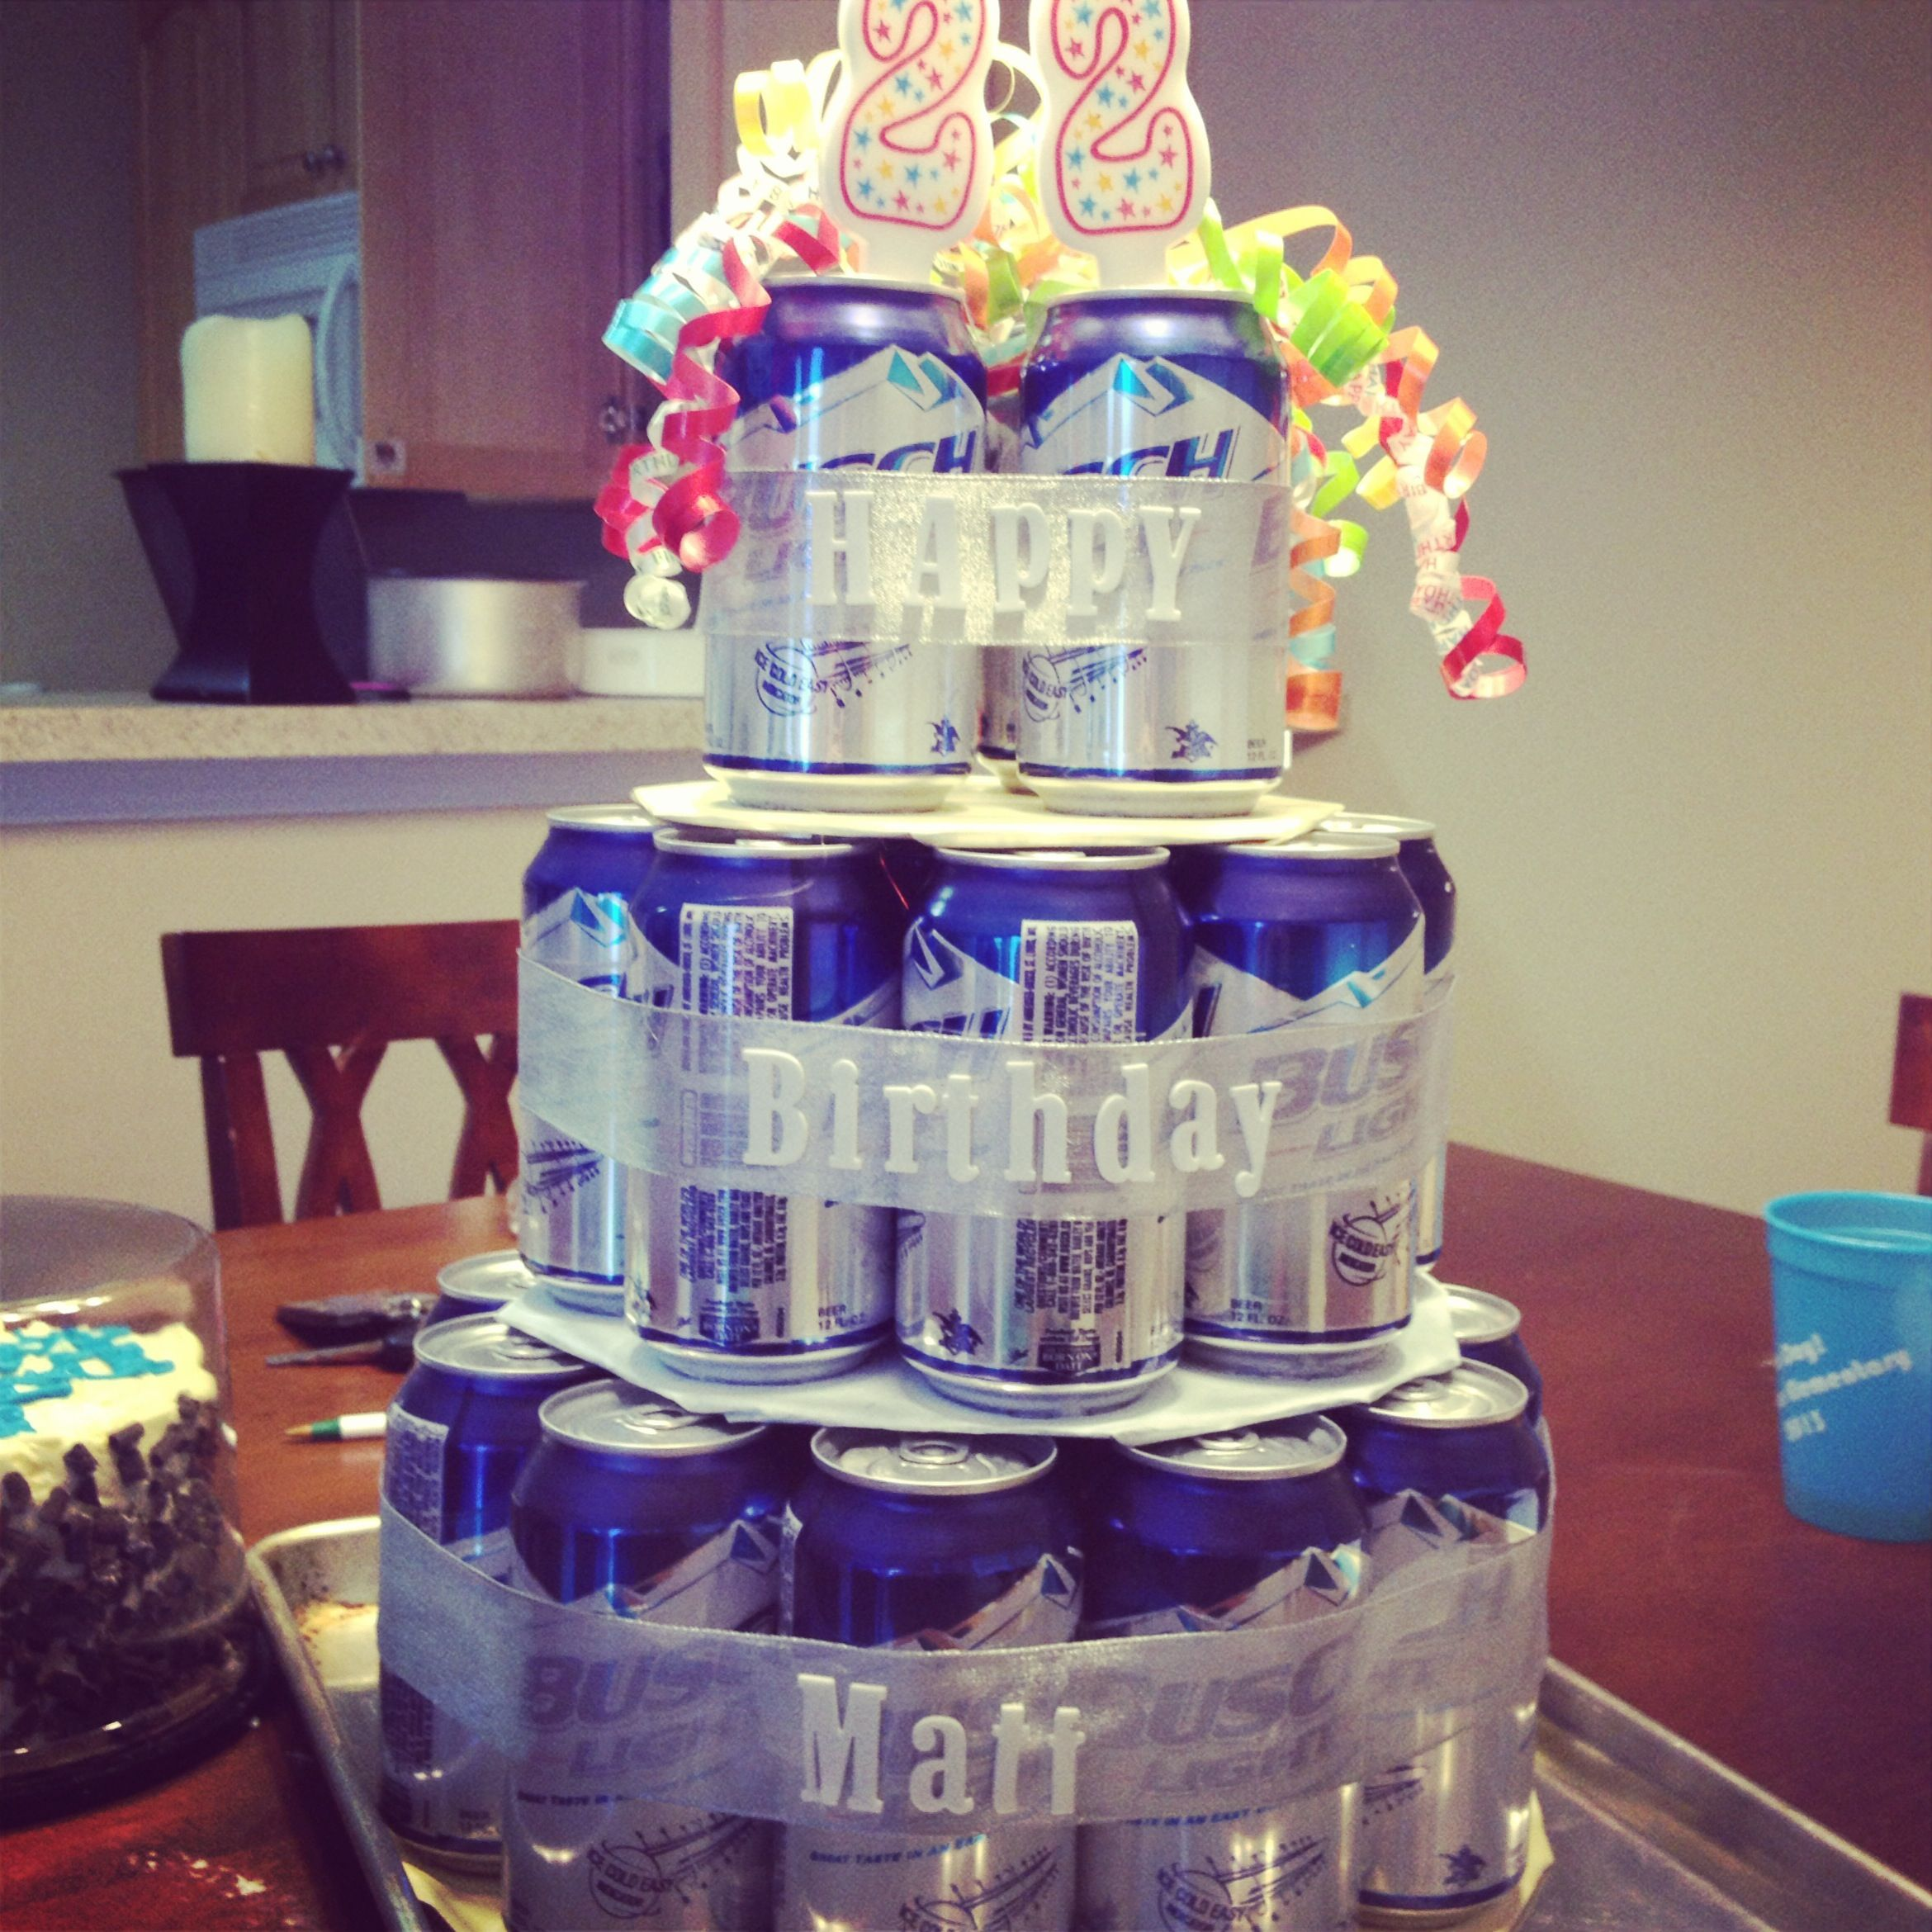 22nd Birthday Cake Designs: Birthday Beer Cake! This Is A Great Idea And Really Easy